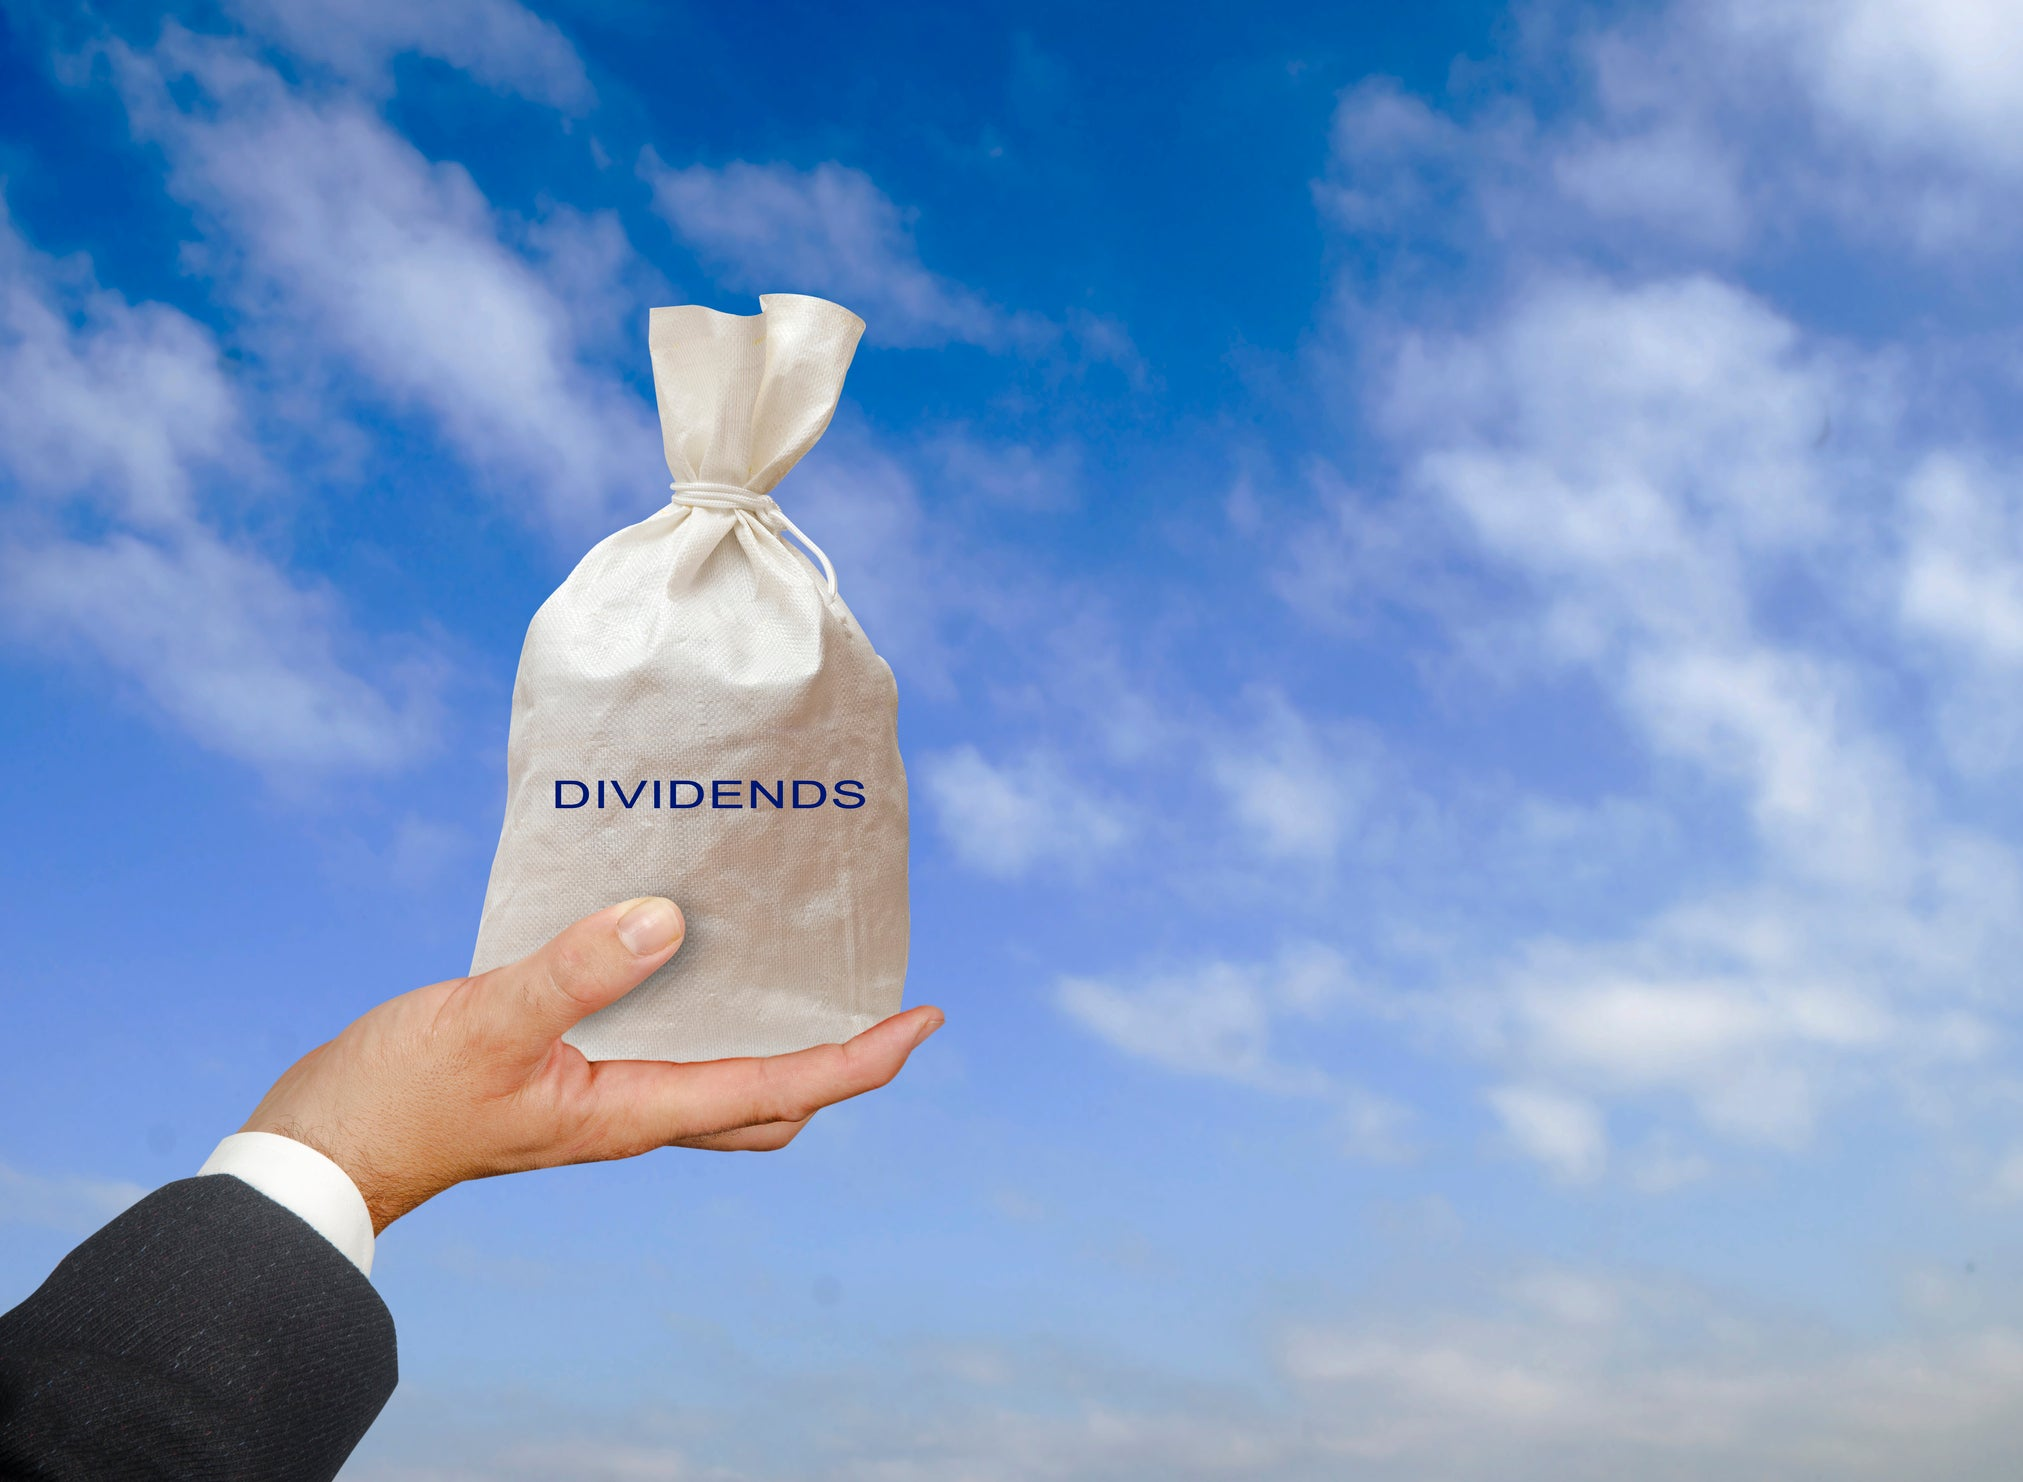 Got $1,000? Here Are 2 Great Dividend Stocks for Beginners